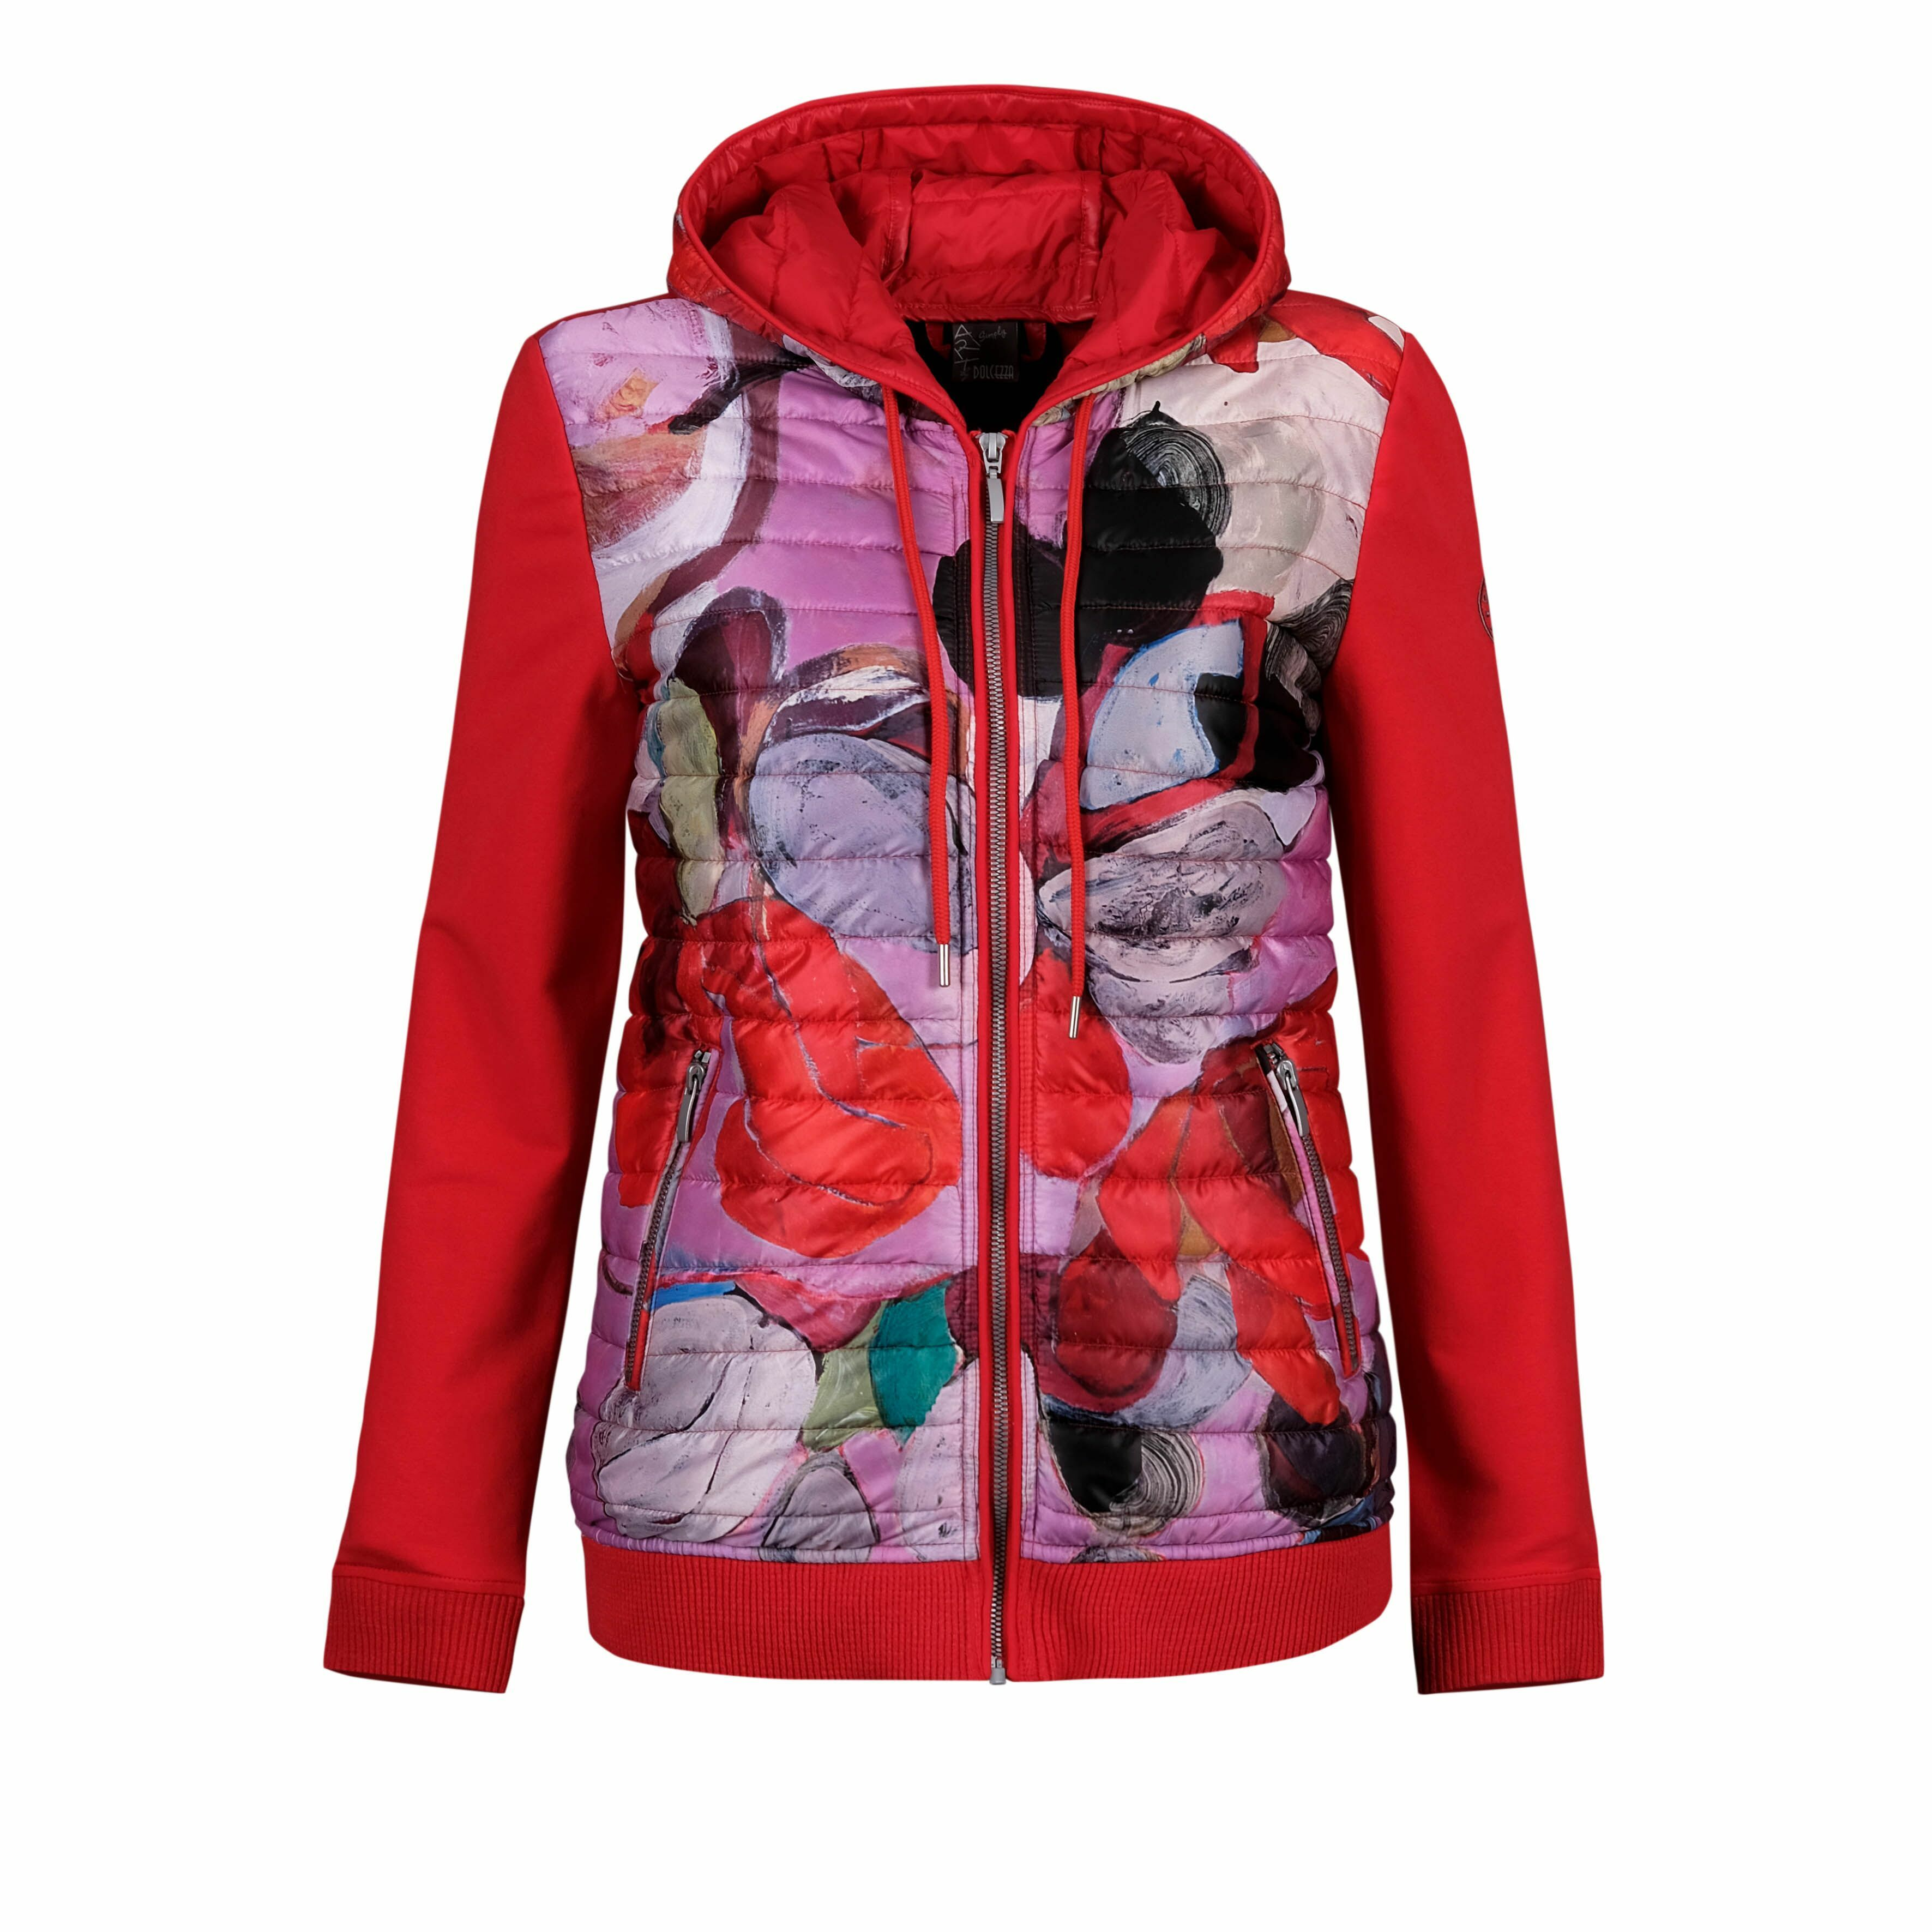 Simply Art Dolcezza: Blooms In Rouge Abstract Art Puff Hoodie Jacket (2 Left!) DOLCEZZA_SIMPLYART_20811_N1